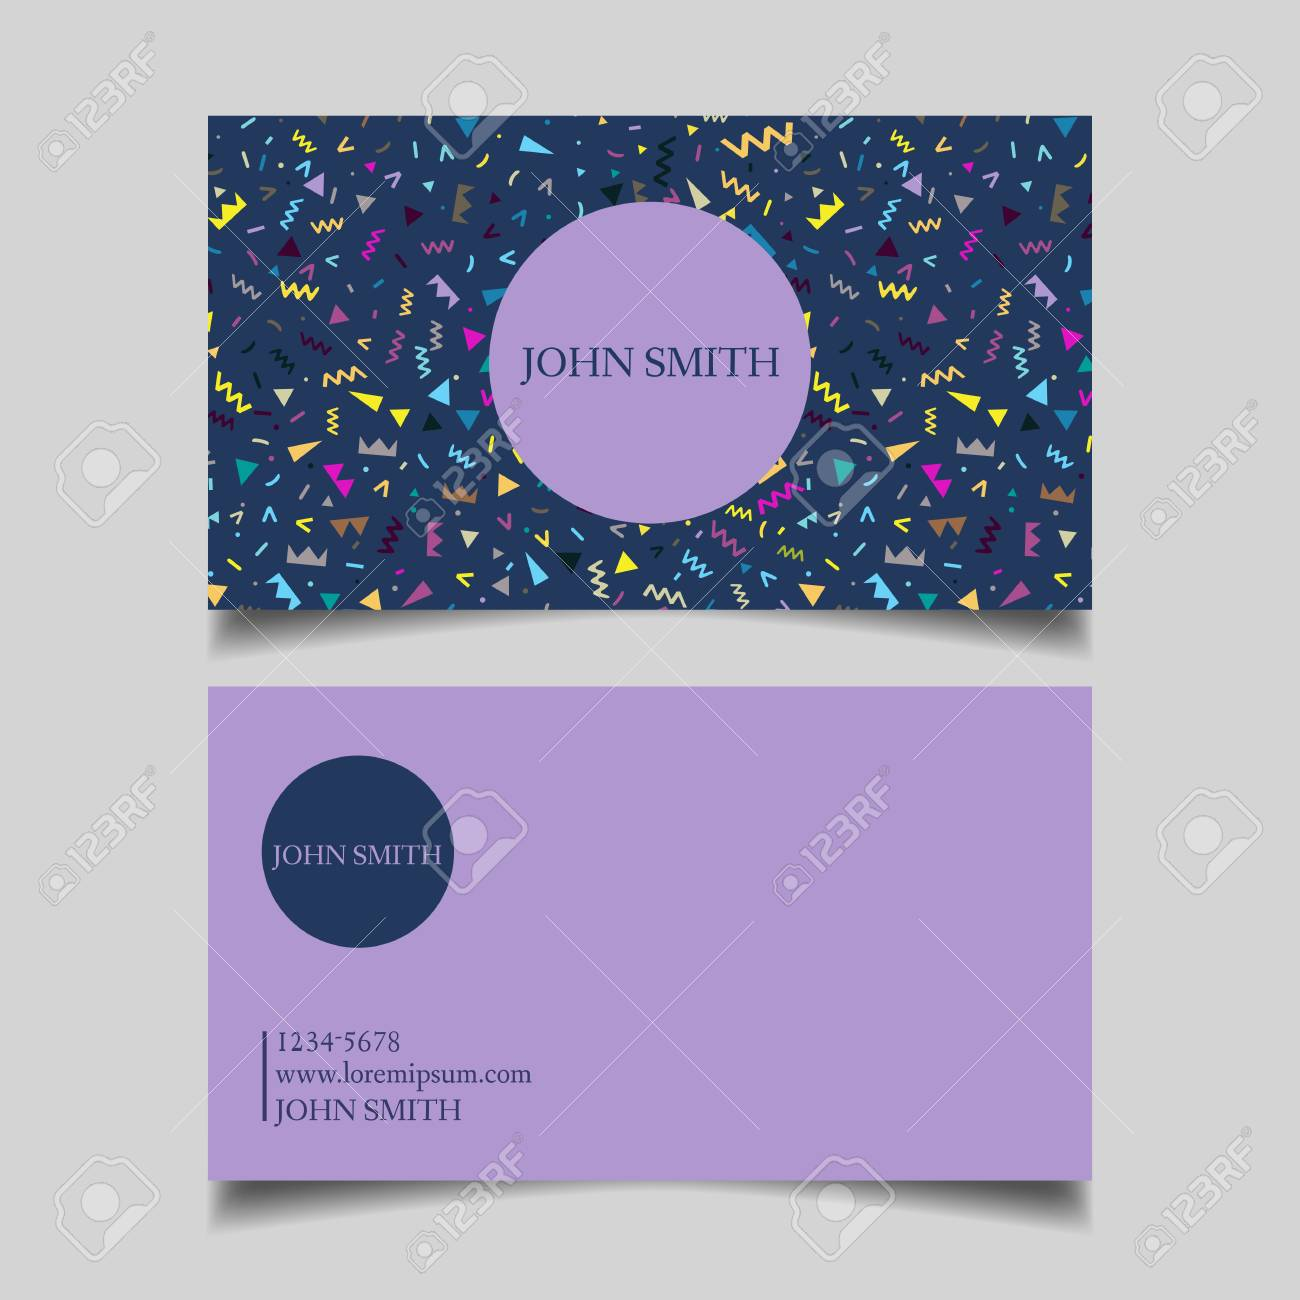 Template Business Card Editable Neat Blue Purple Background The Design Of